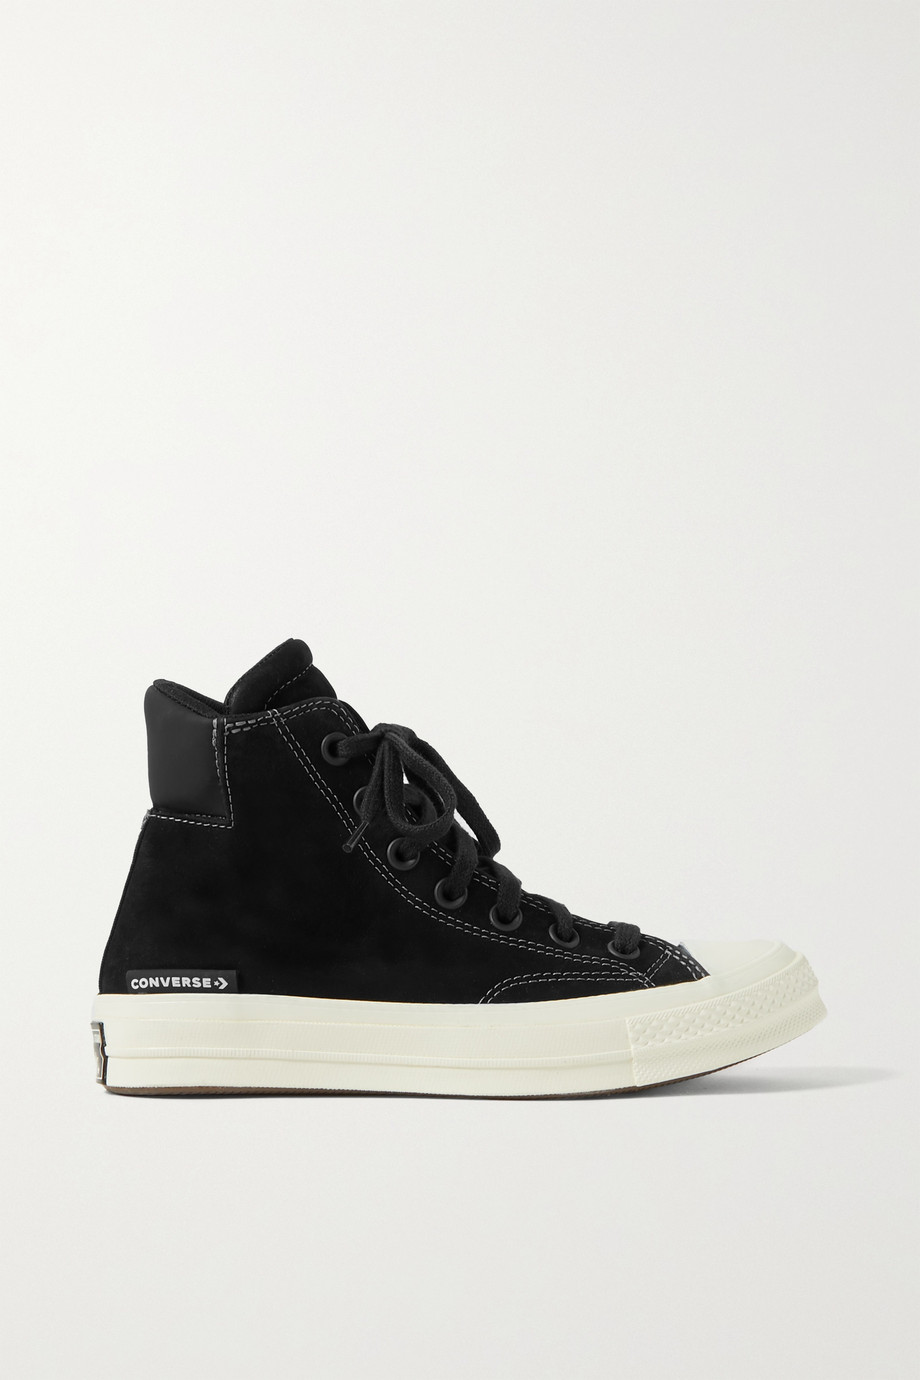 CONVERSE Chuck Taylor All Star 70 suede and neoprene high-top sneakers